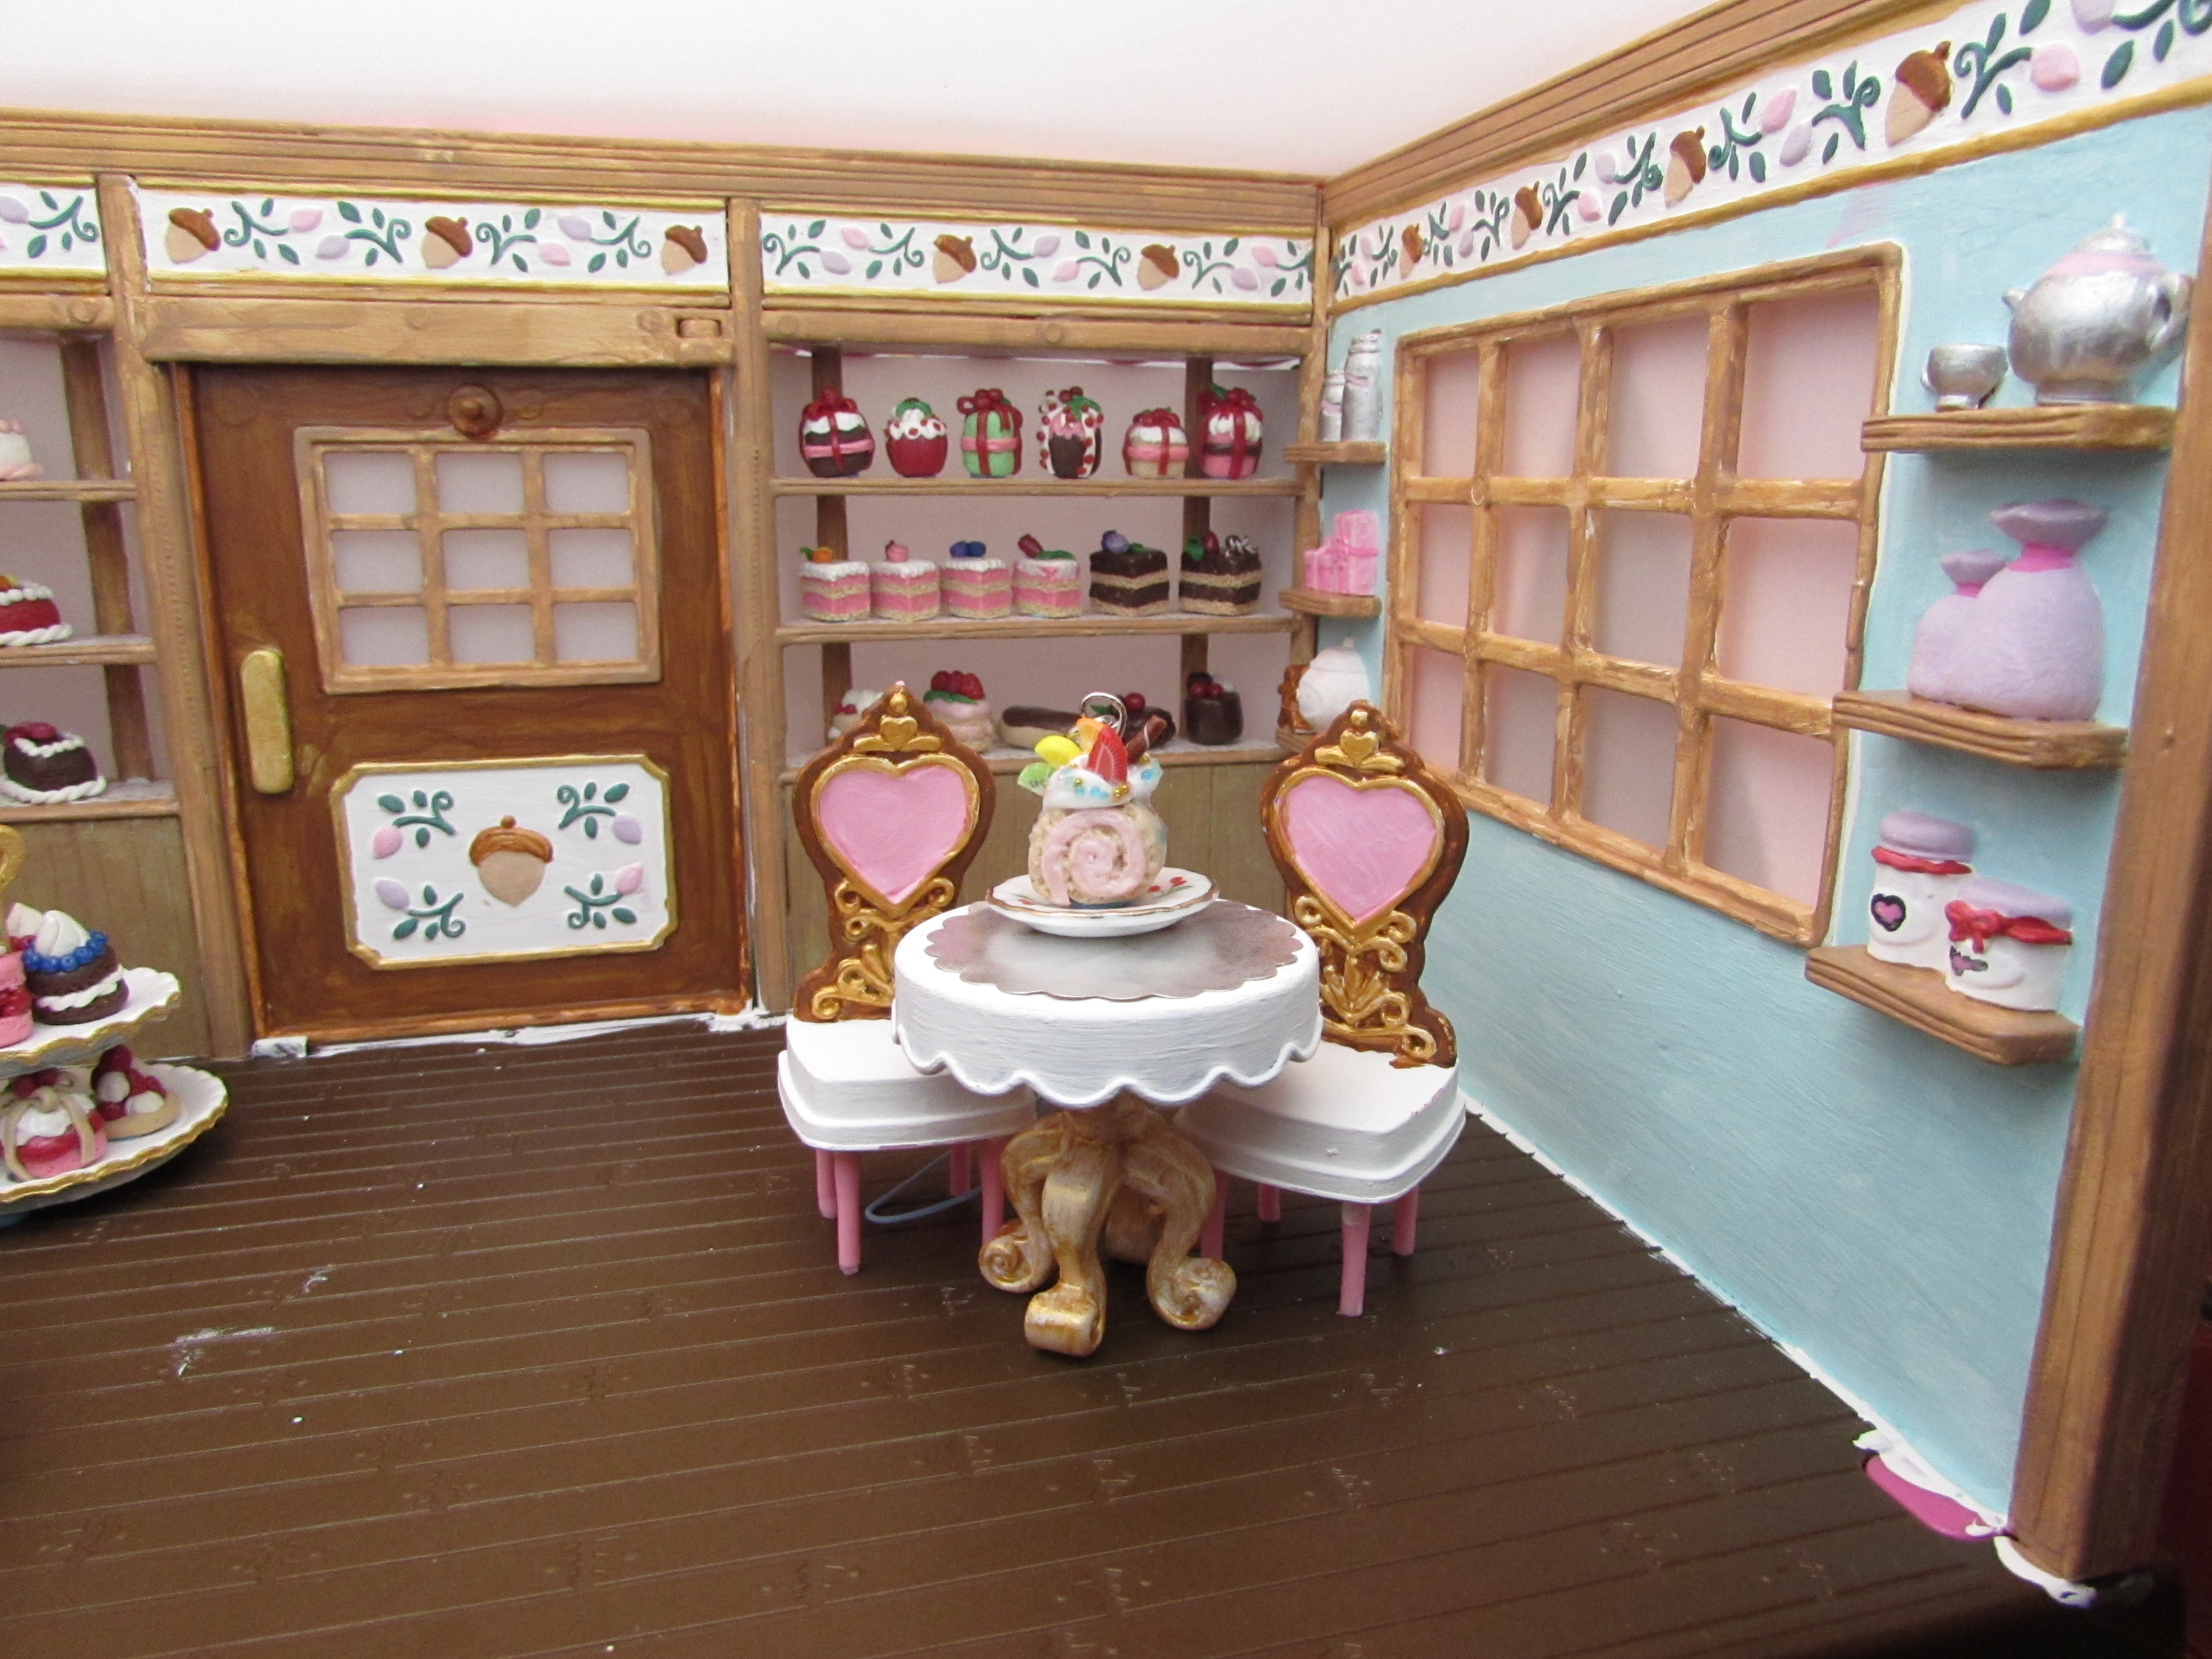 repaint dollhouse furniture | ❦Cute Creations of Decoden and Clay❦